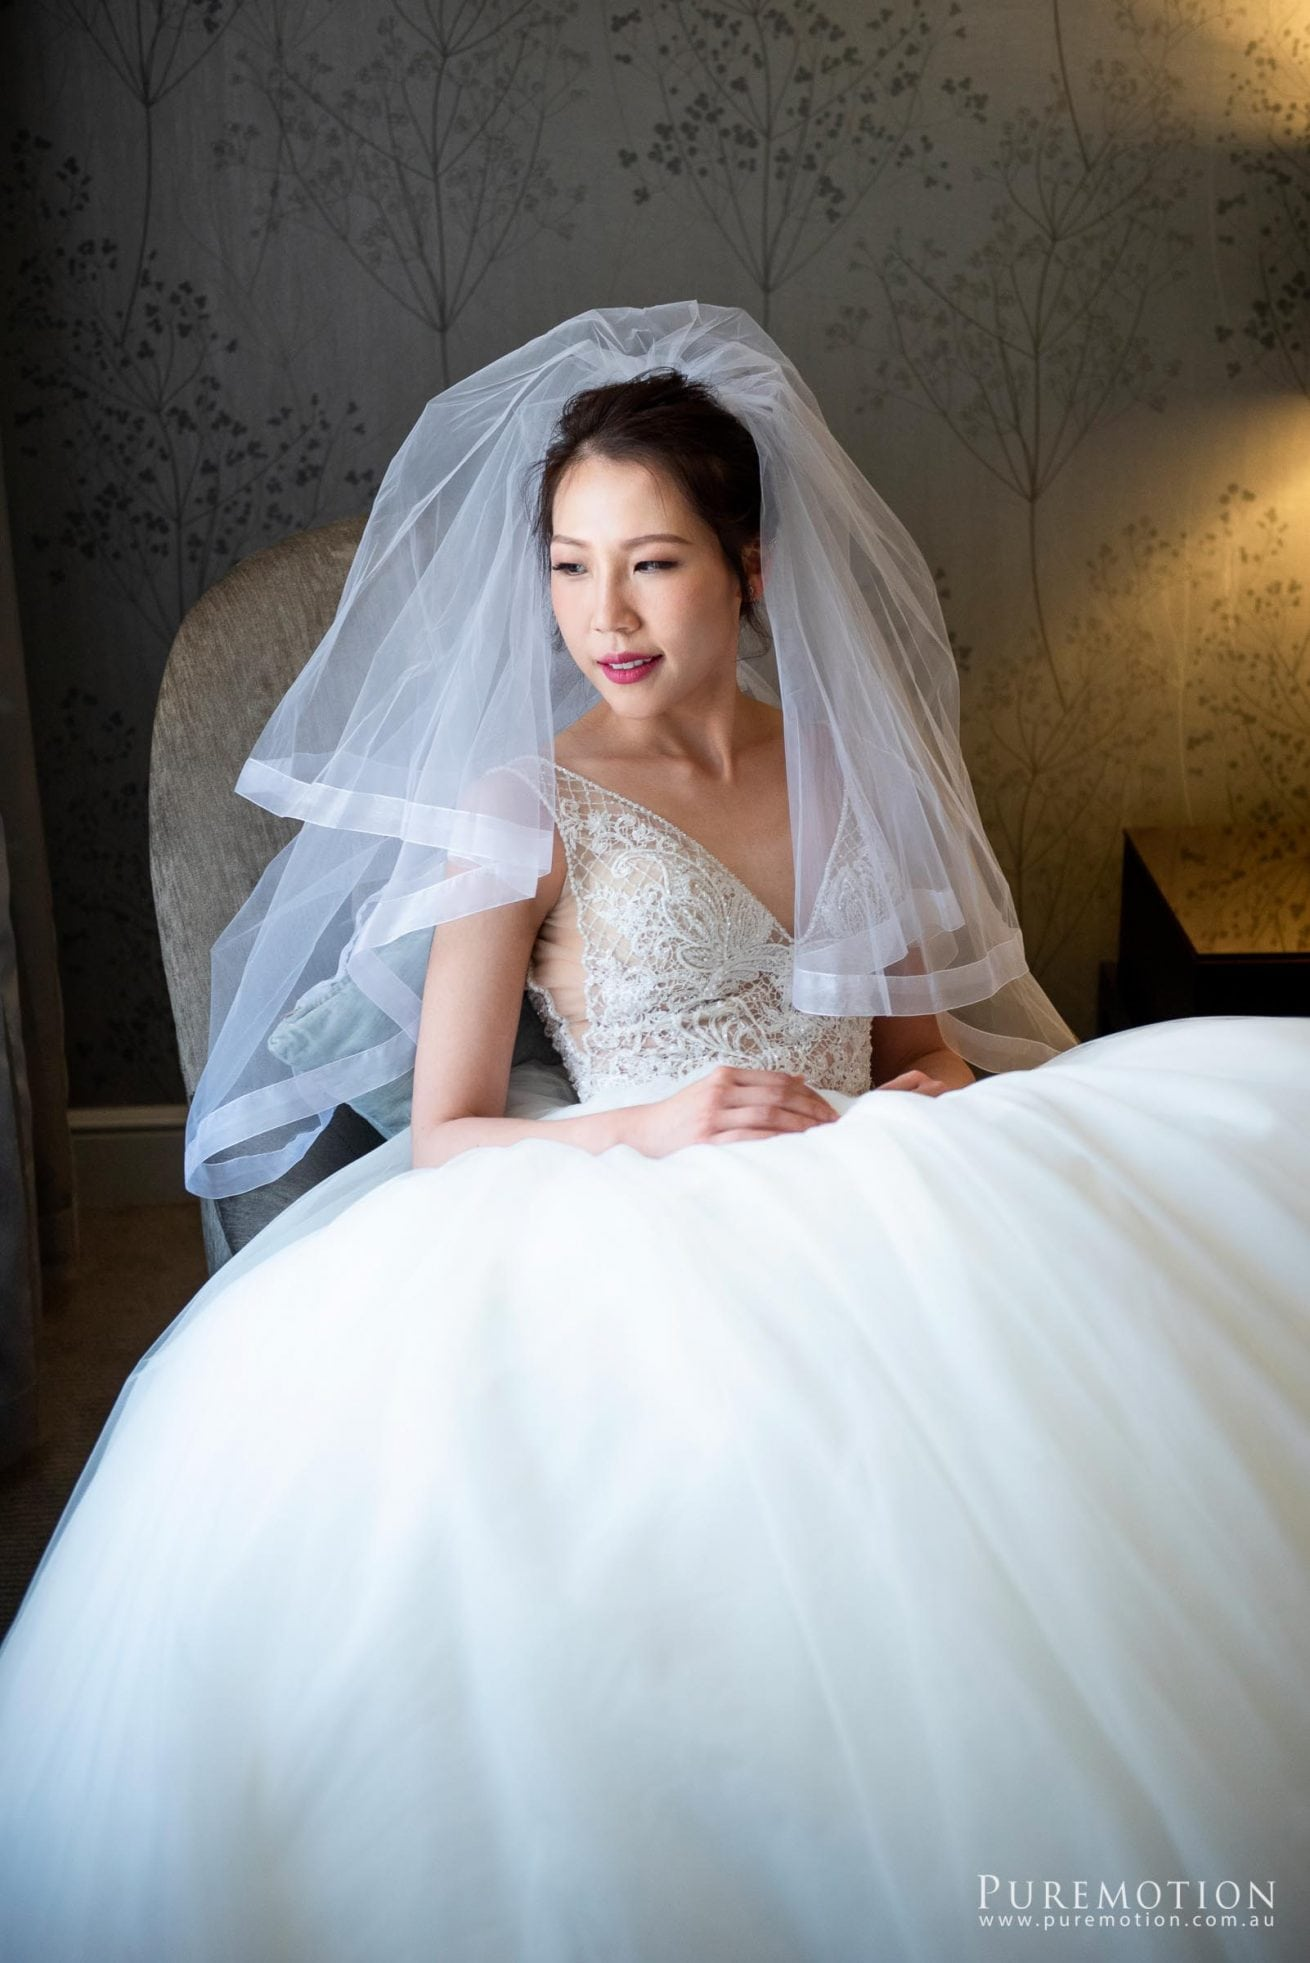 180818 Puremotion Wedding Photography Brisbane Alex Huang MichelleConan Room 360_Site-0043